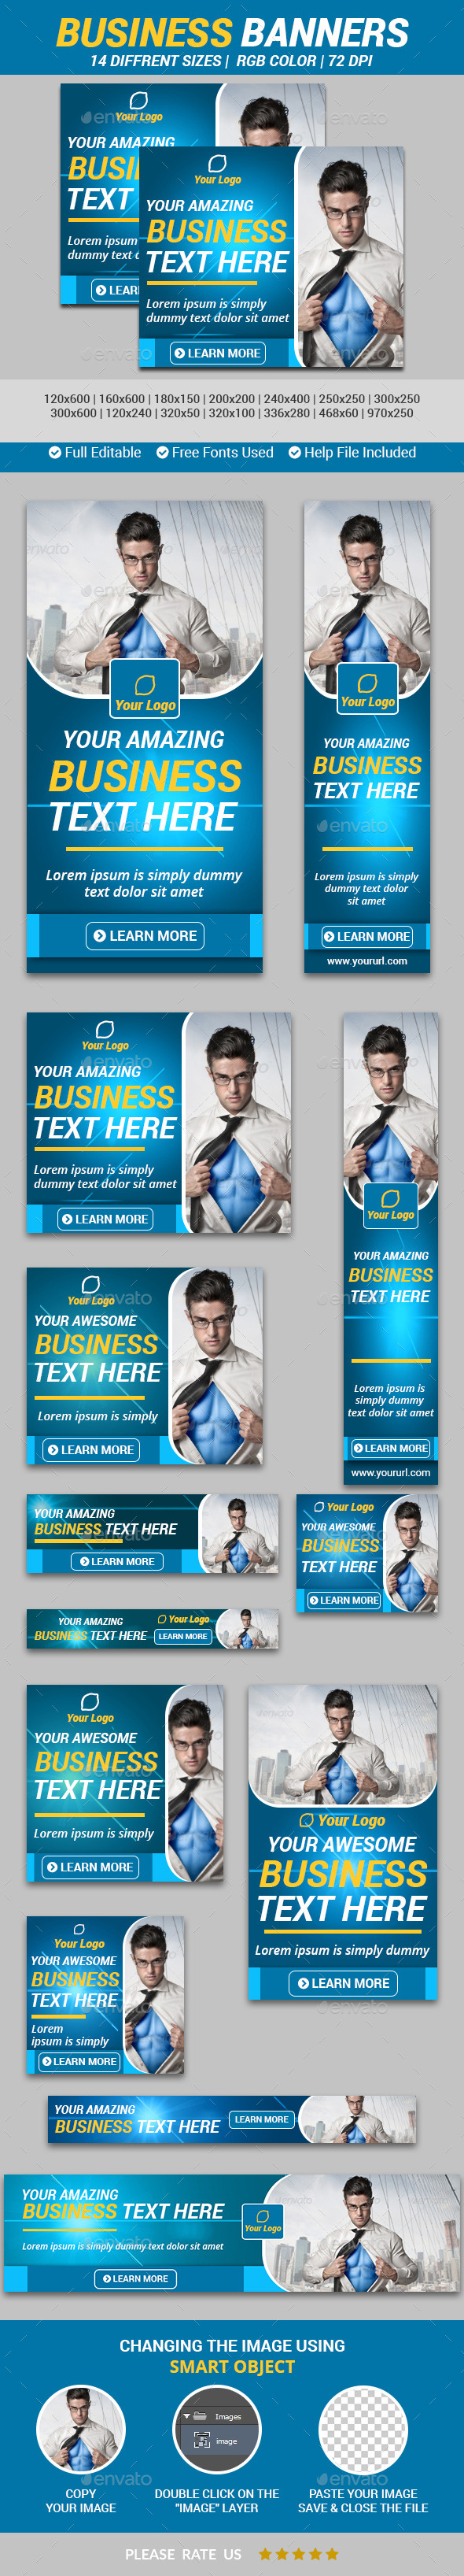 Business Banners v2 - Banners & Ads Web Elements